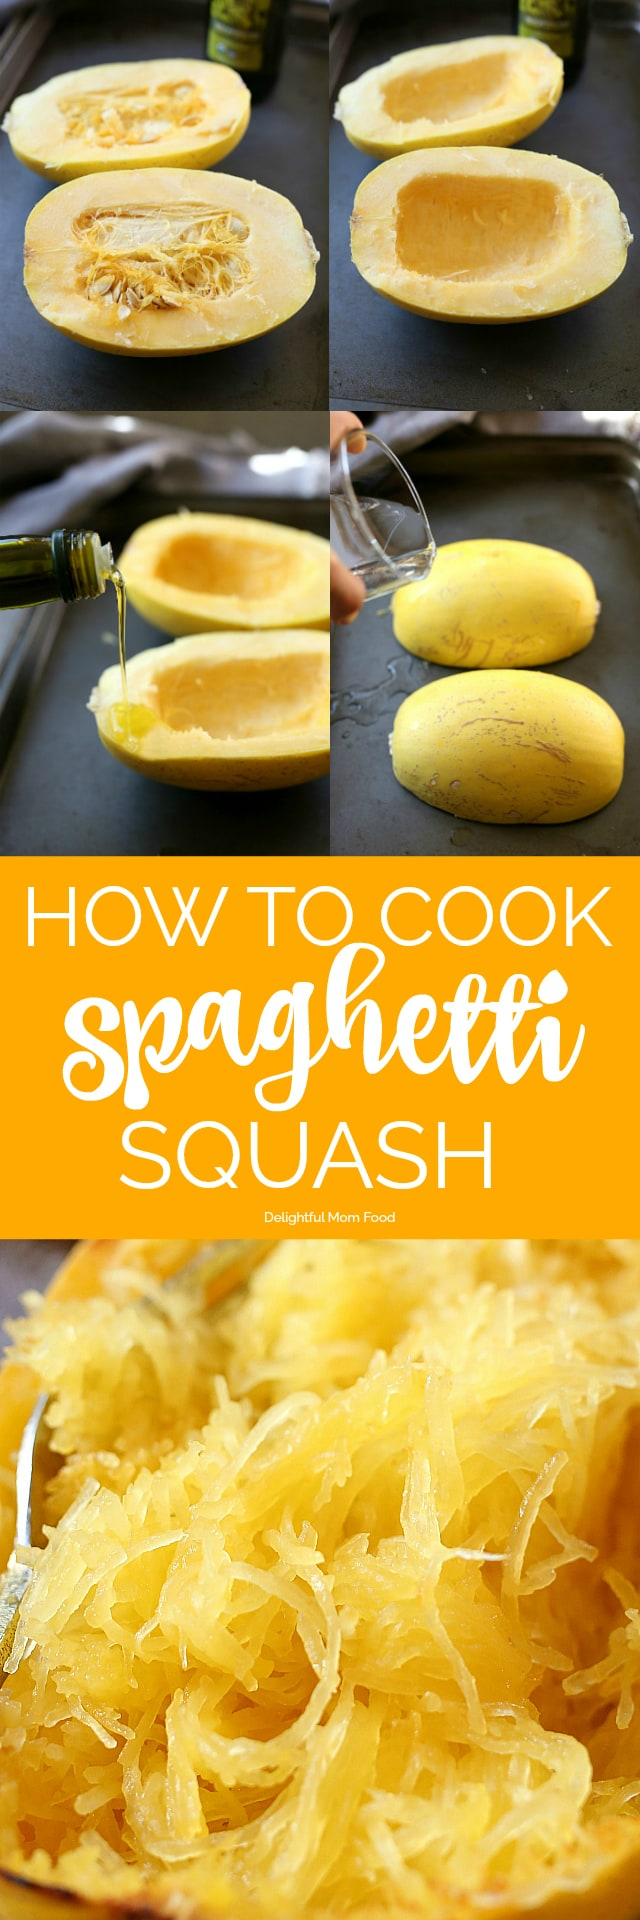 How to cook spaghetti squash roasted, microwaved, in the slow cooker and grilled easily and effortlessly!